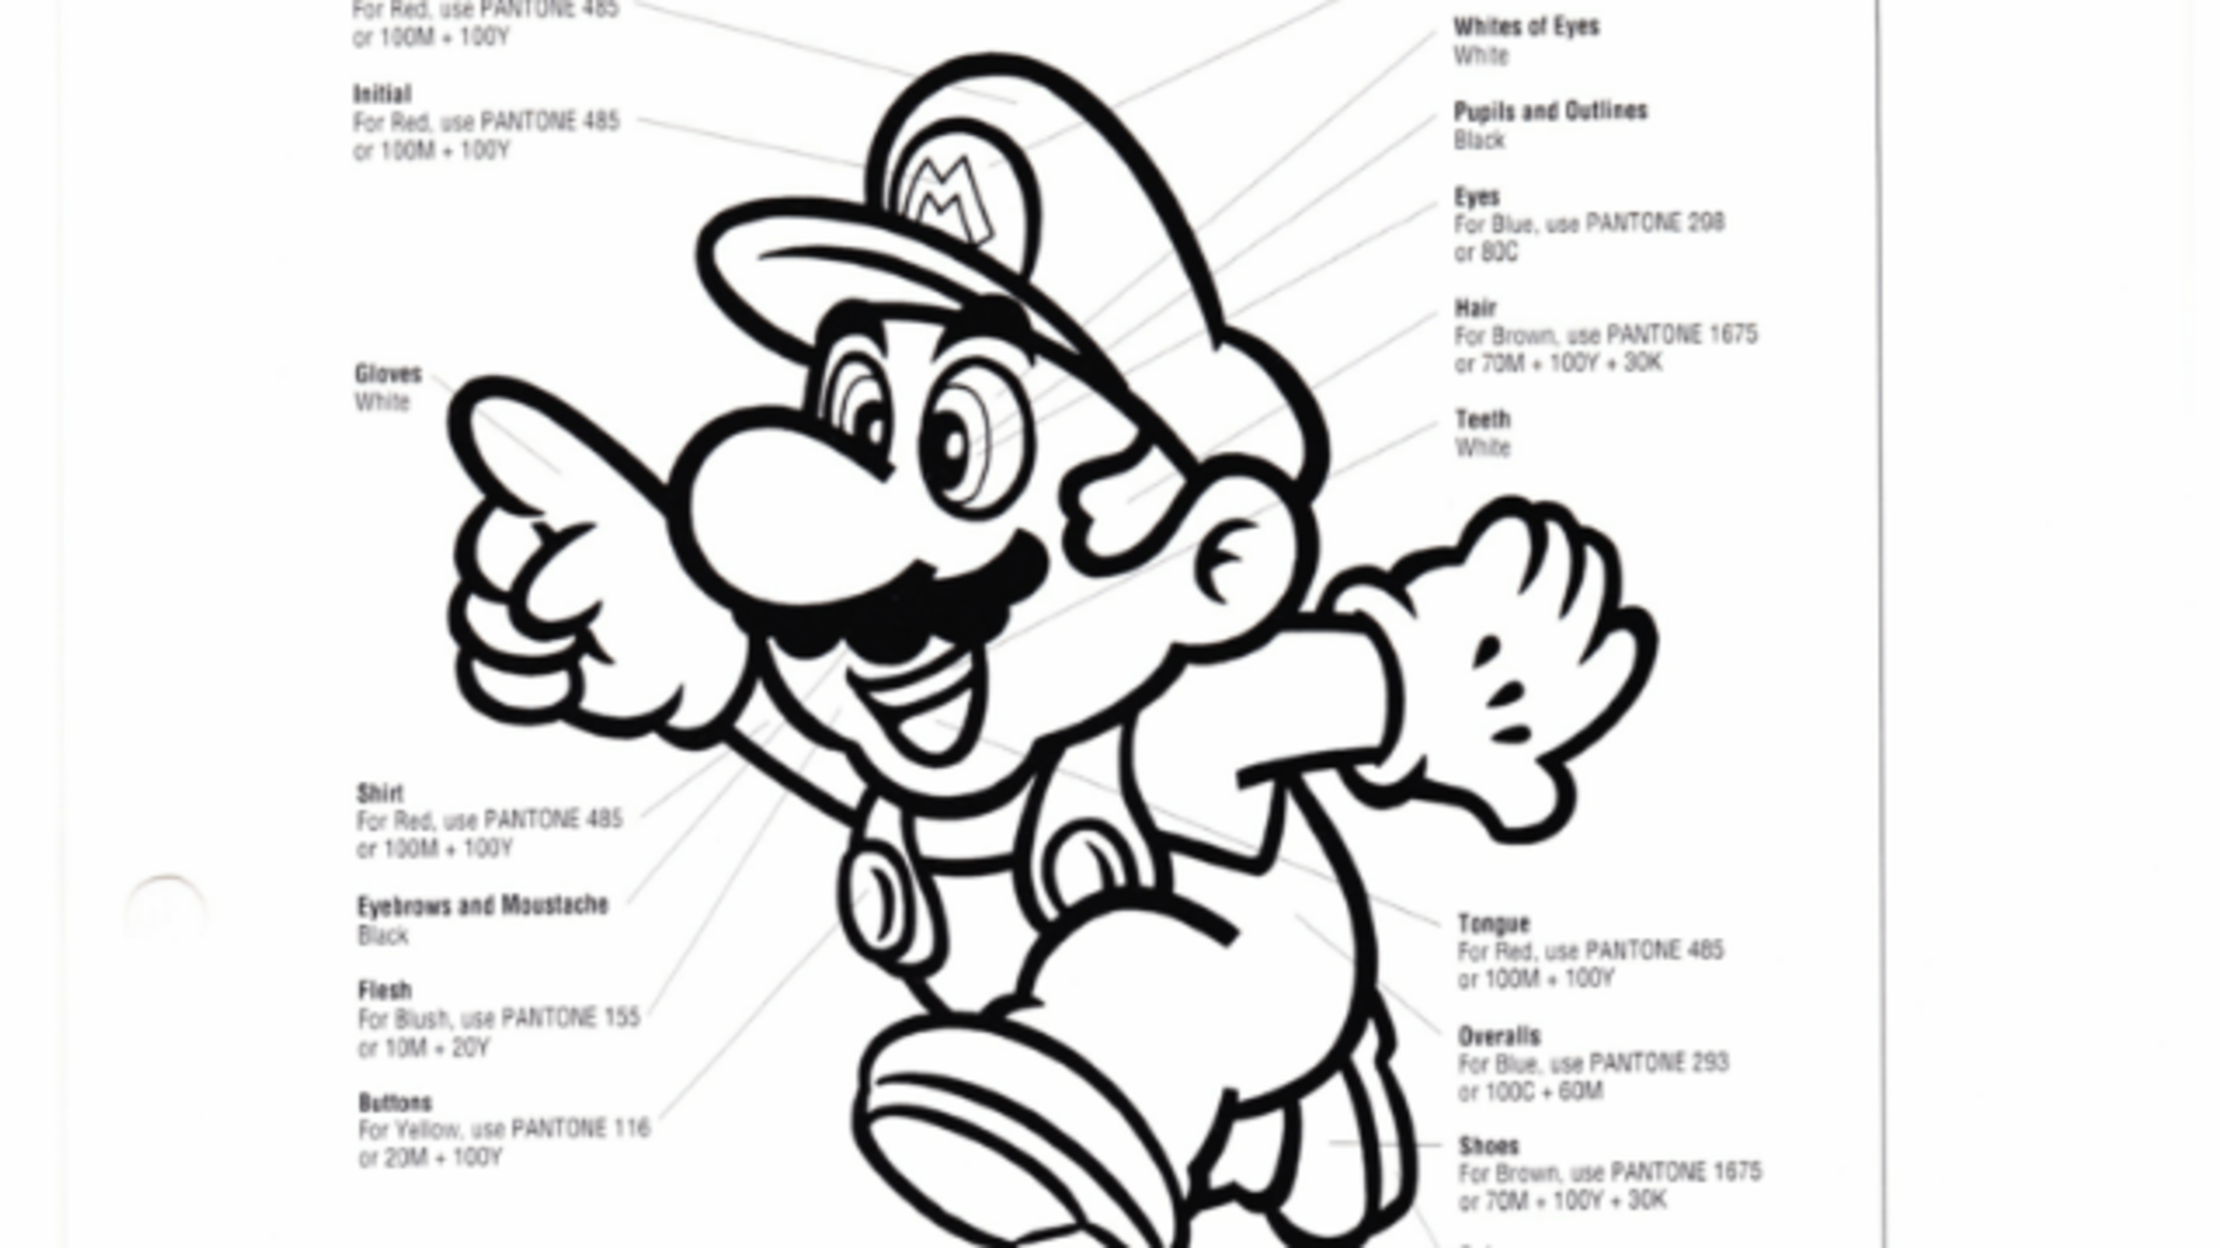 15 Very Specific Mario Facts From a 1993 Nintendo Internal